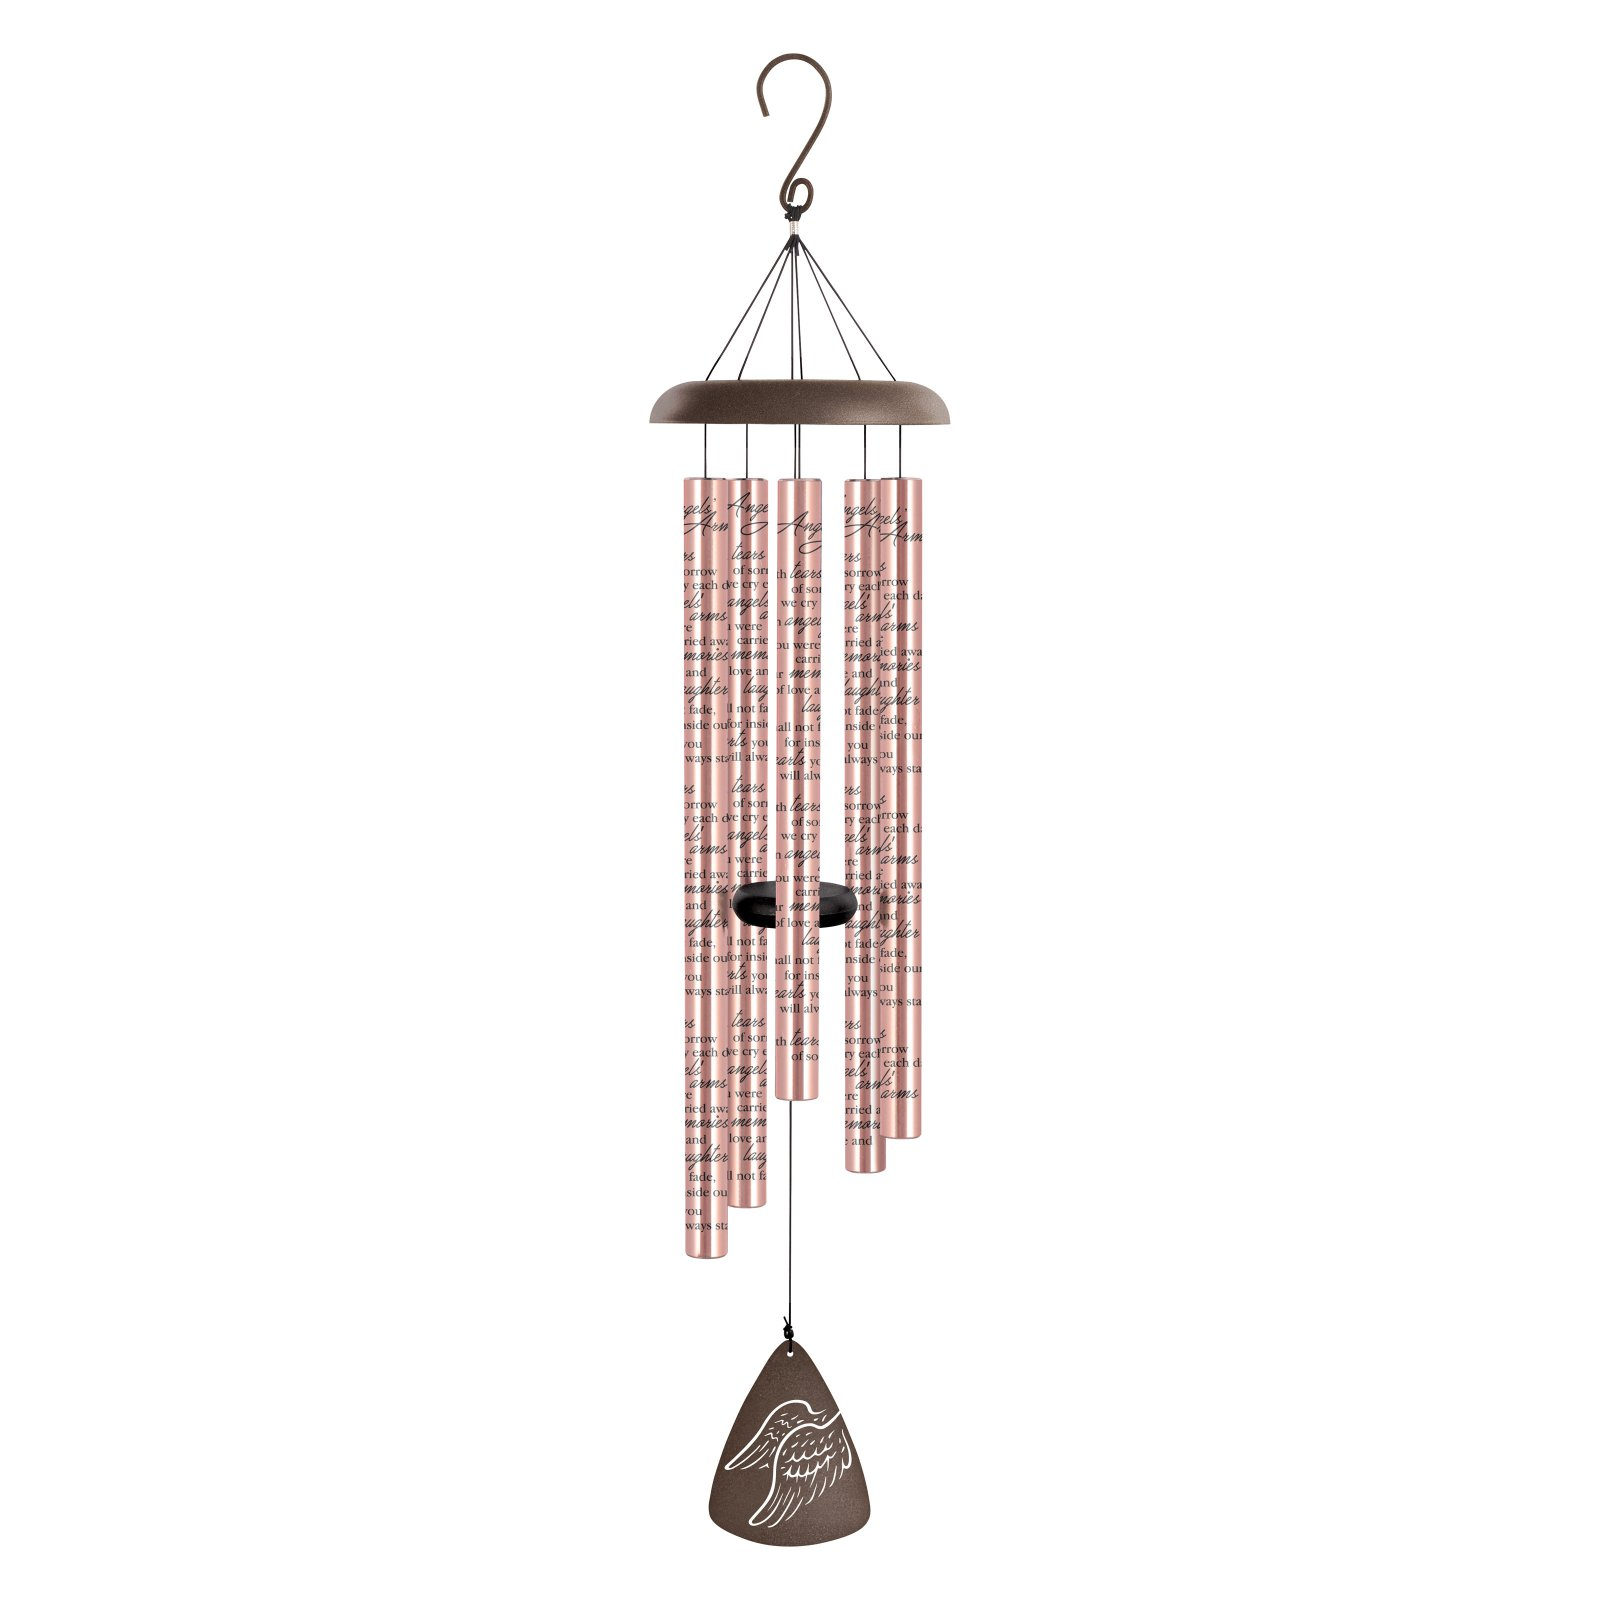 Carson Home Accents Angels Arms Wind Chime by CC Outdoor Living